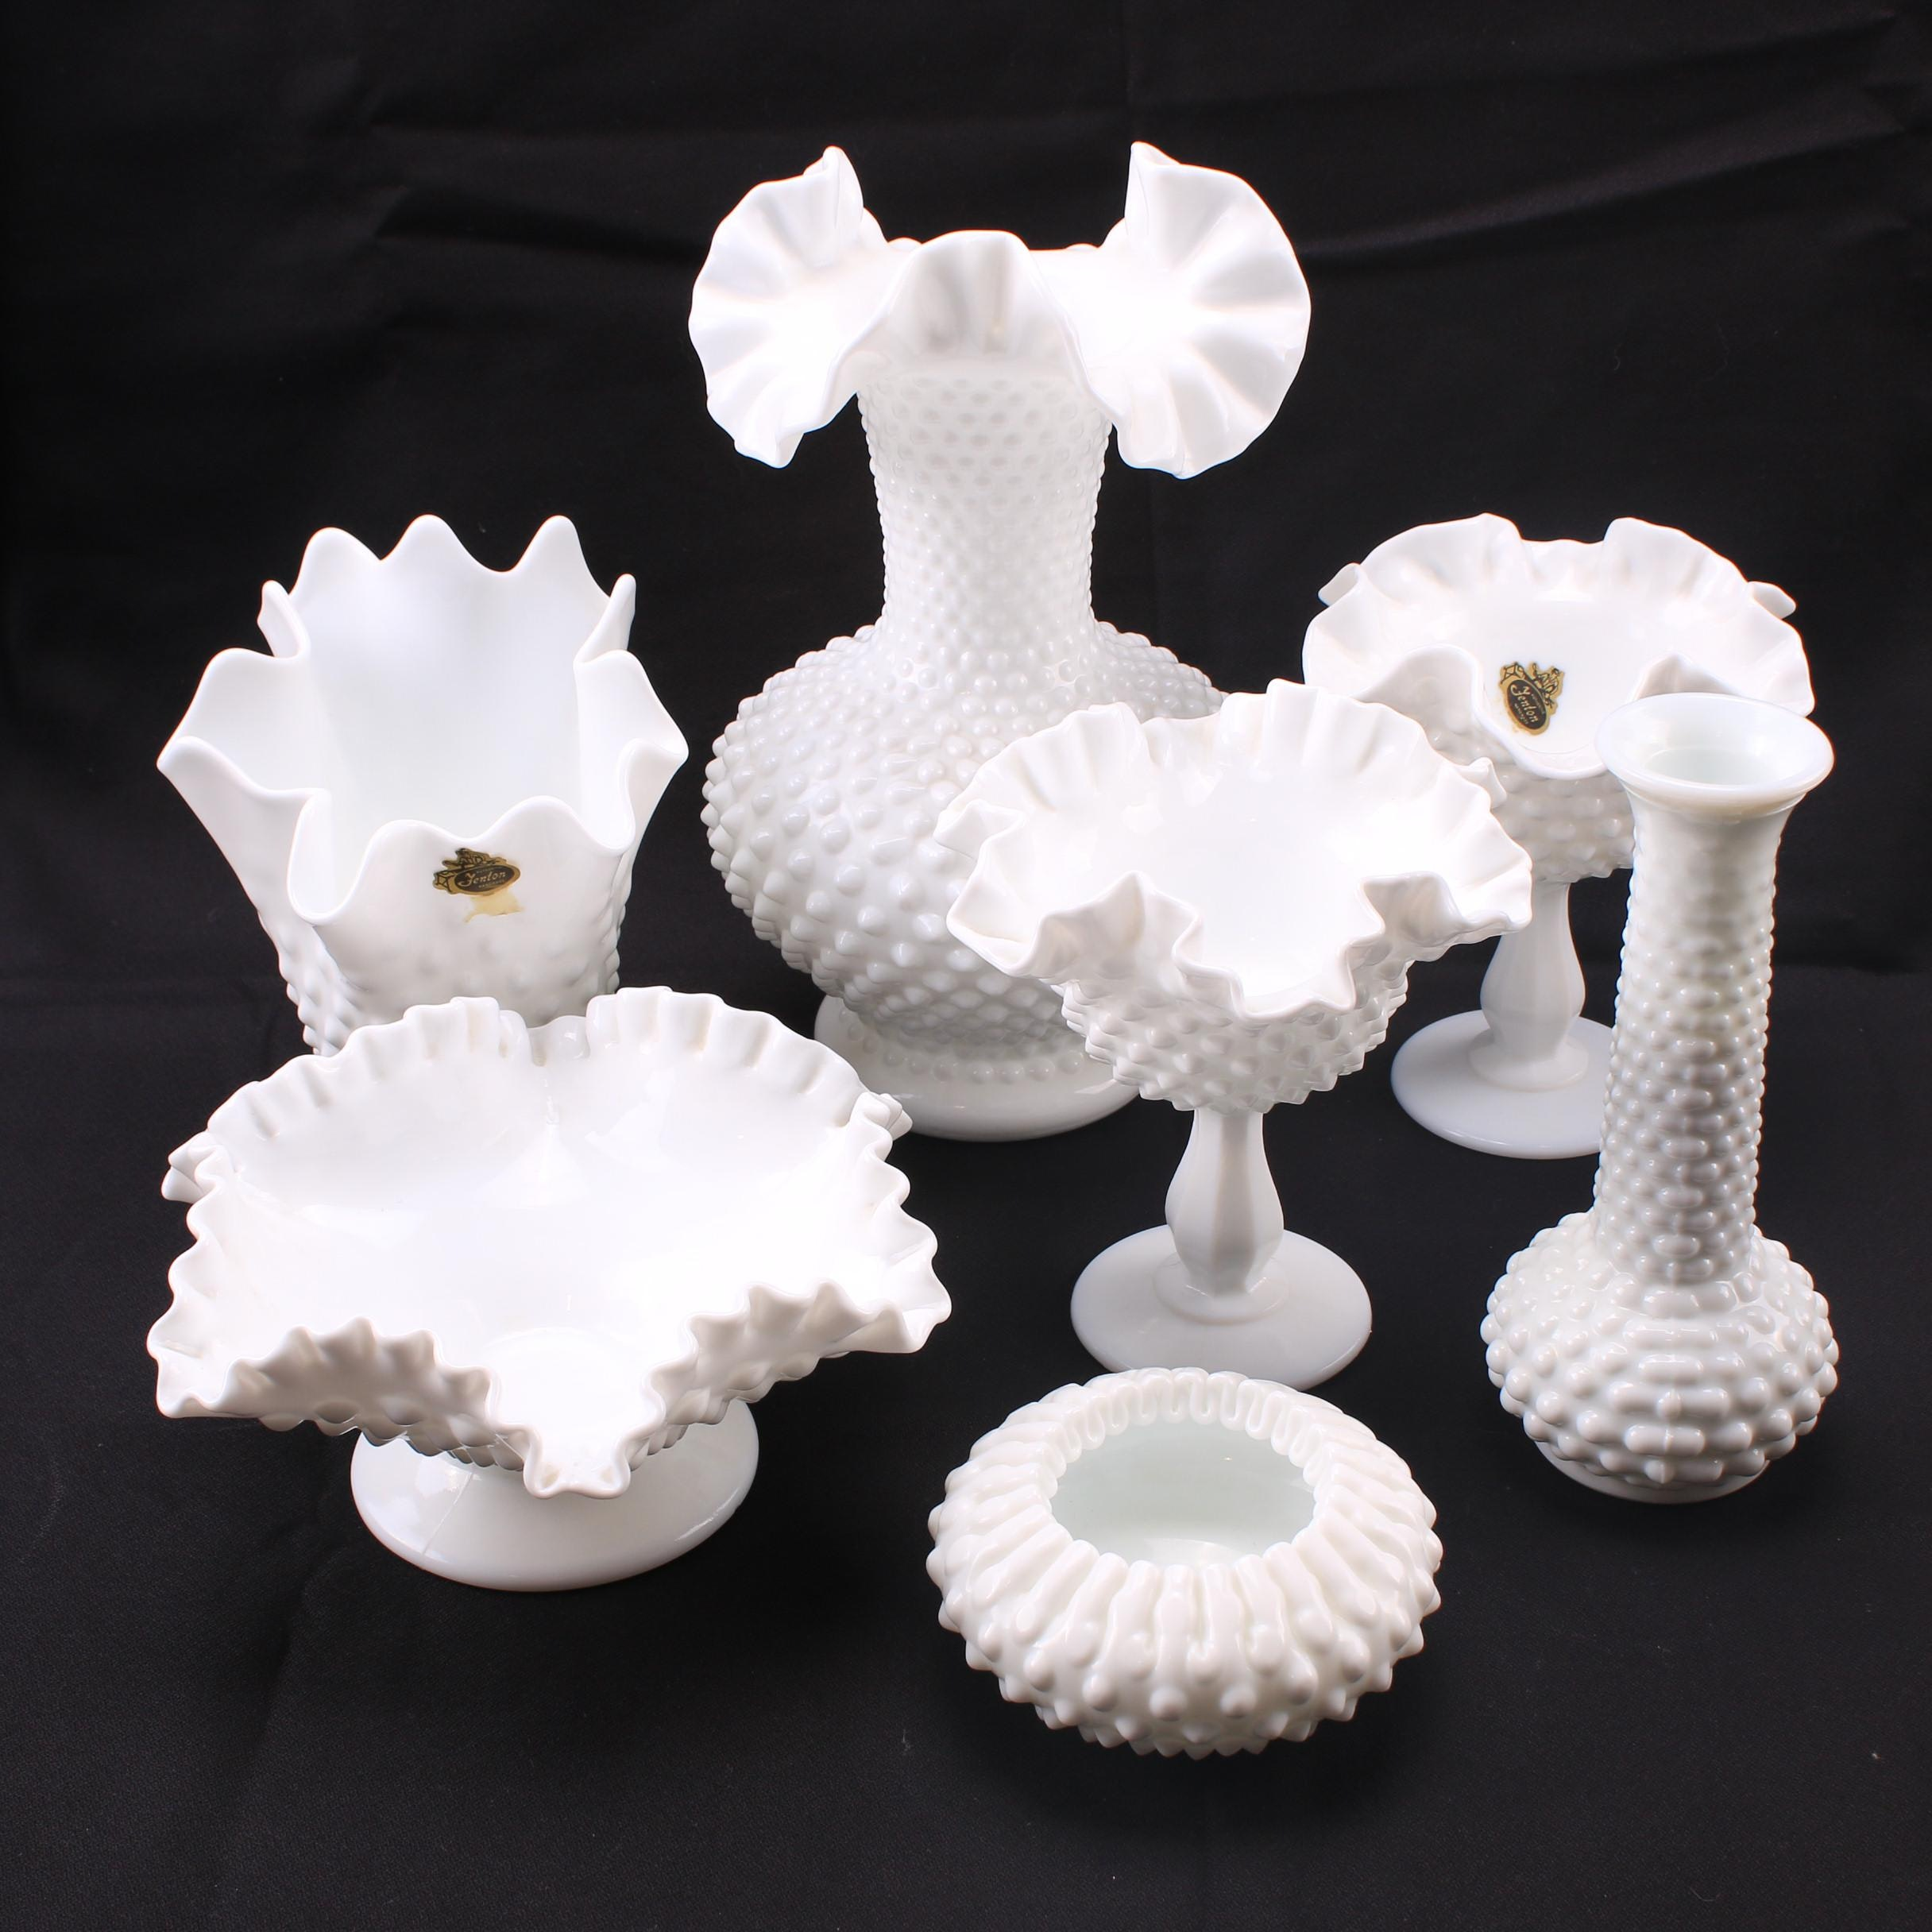 Fenton Hobnail Milk Glass Vases and Dishes, Vintage